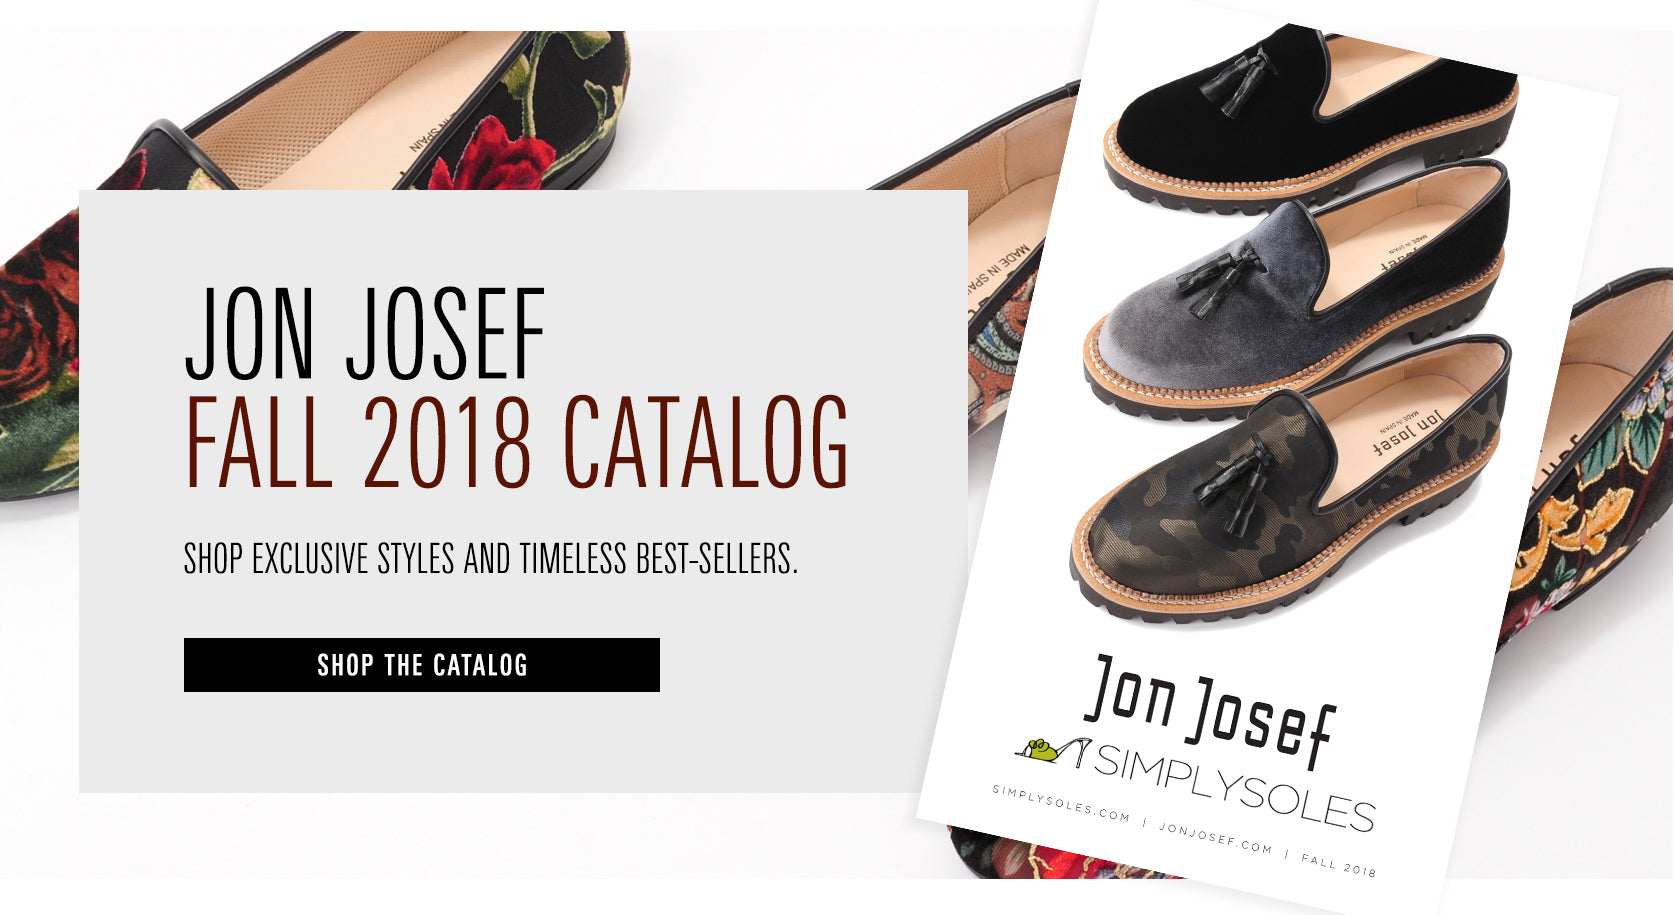 Shop the New Catalog Now - Free Shipping